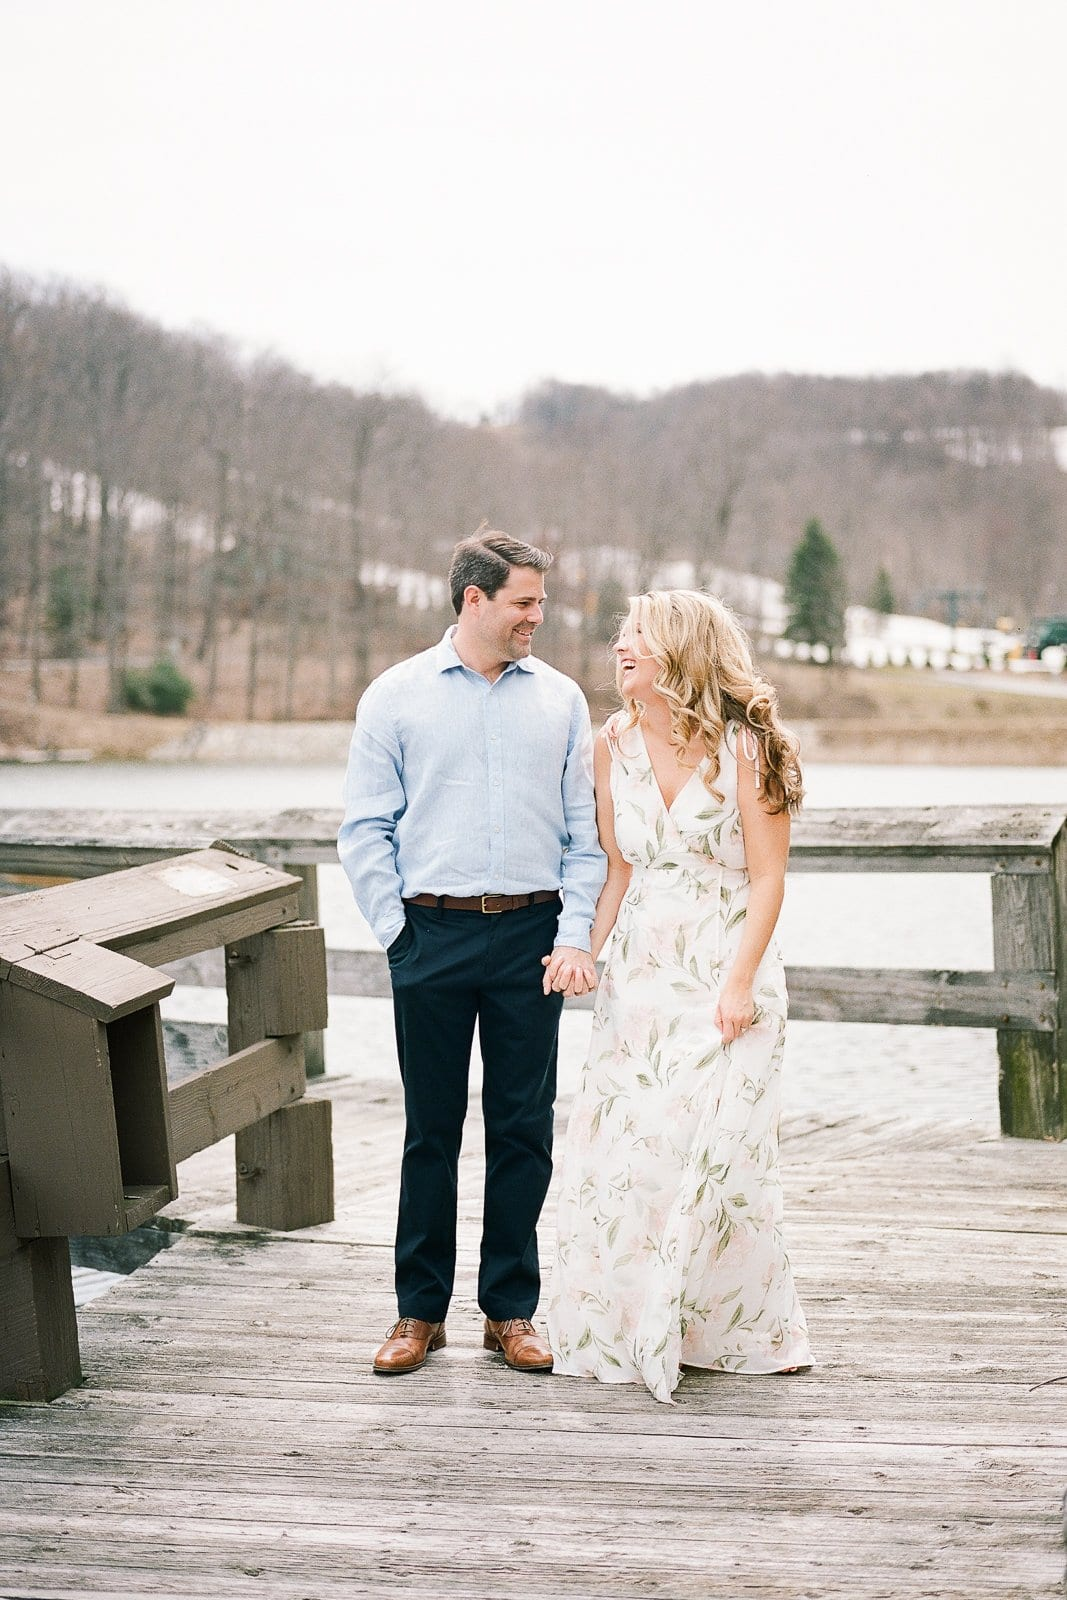 Bride and Groom holding hands and walking on a wooden dock